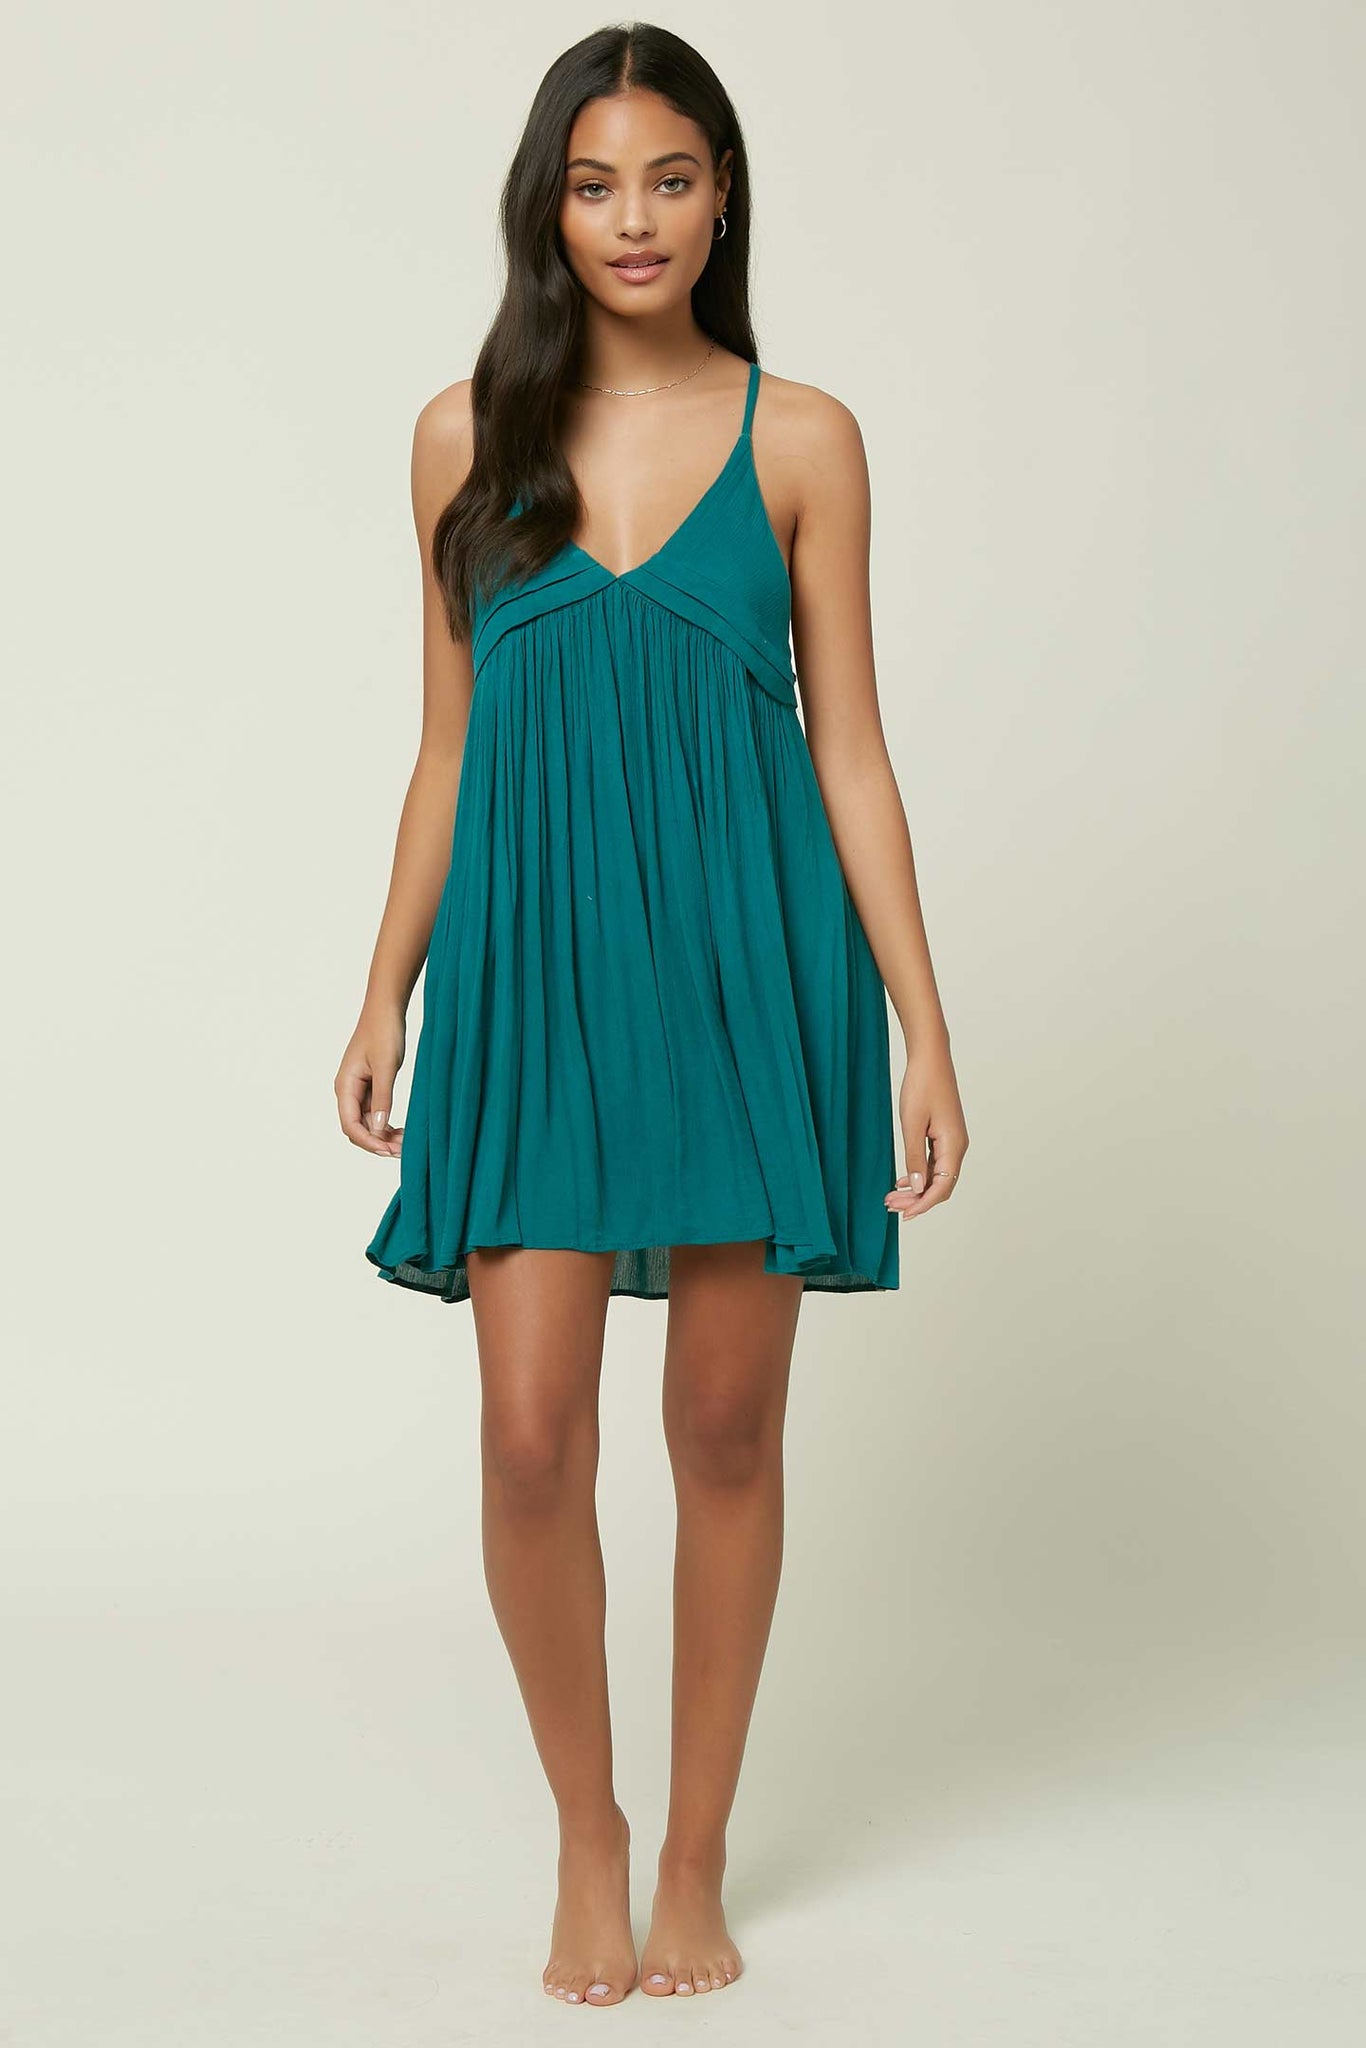 Saltwater Solids Tank Dress Cover-Up - Teal Green | O'Neill